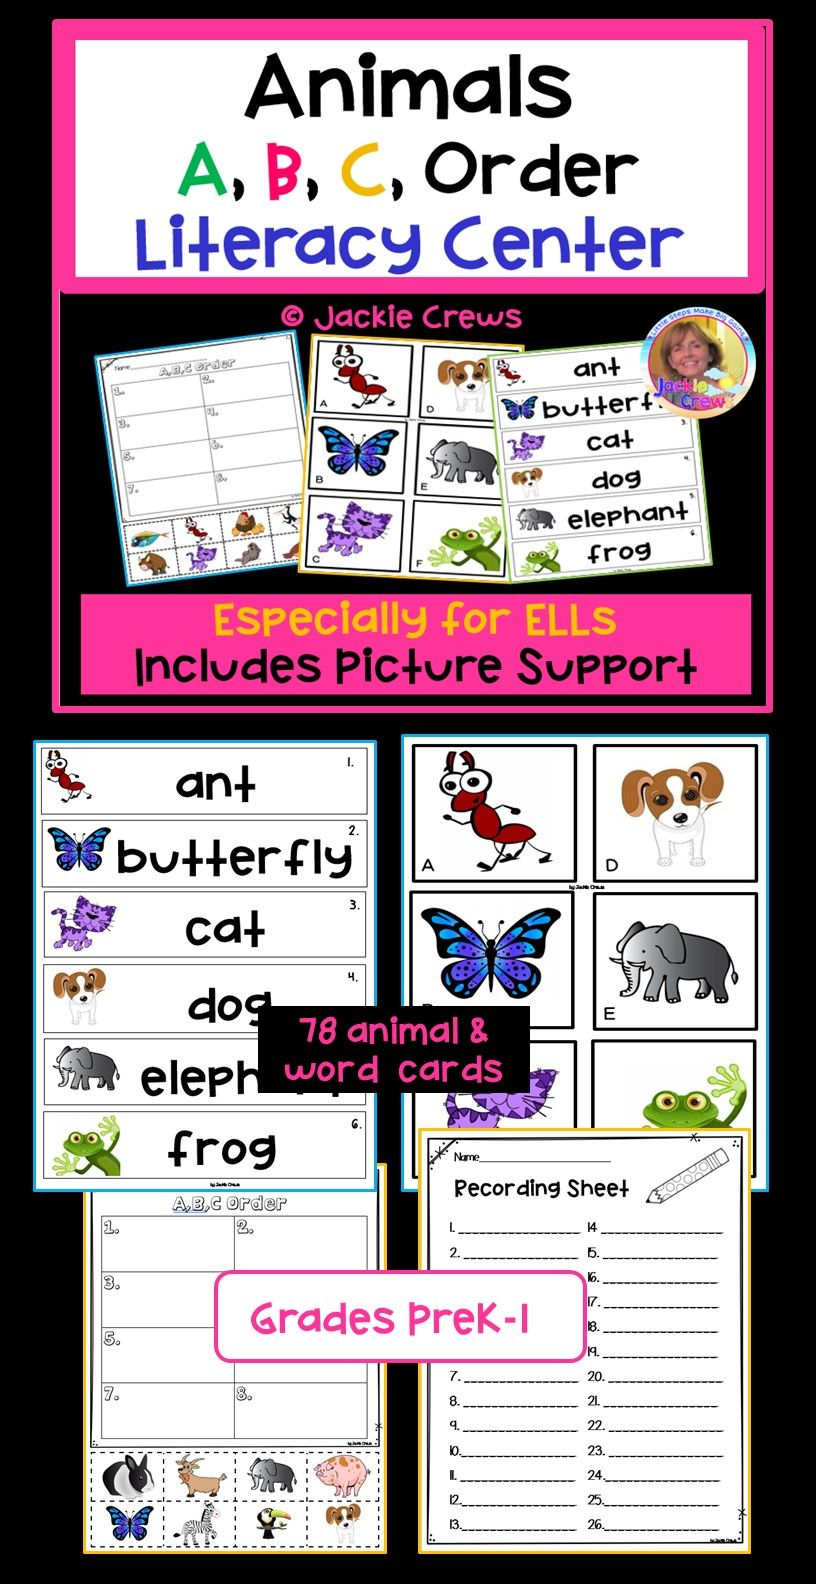 This 20 Page Literacy Center Has Three Sets Of Word Picture Cards The Product Focuses On Learning Animal Names Literacy Centers Literacy Vocabulary Activities [ 1584 x 816 Pixel ]